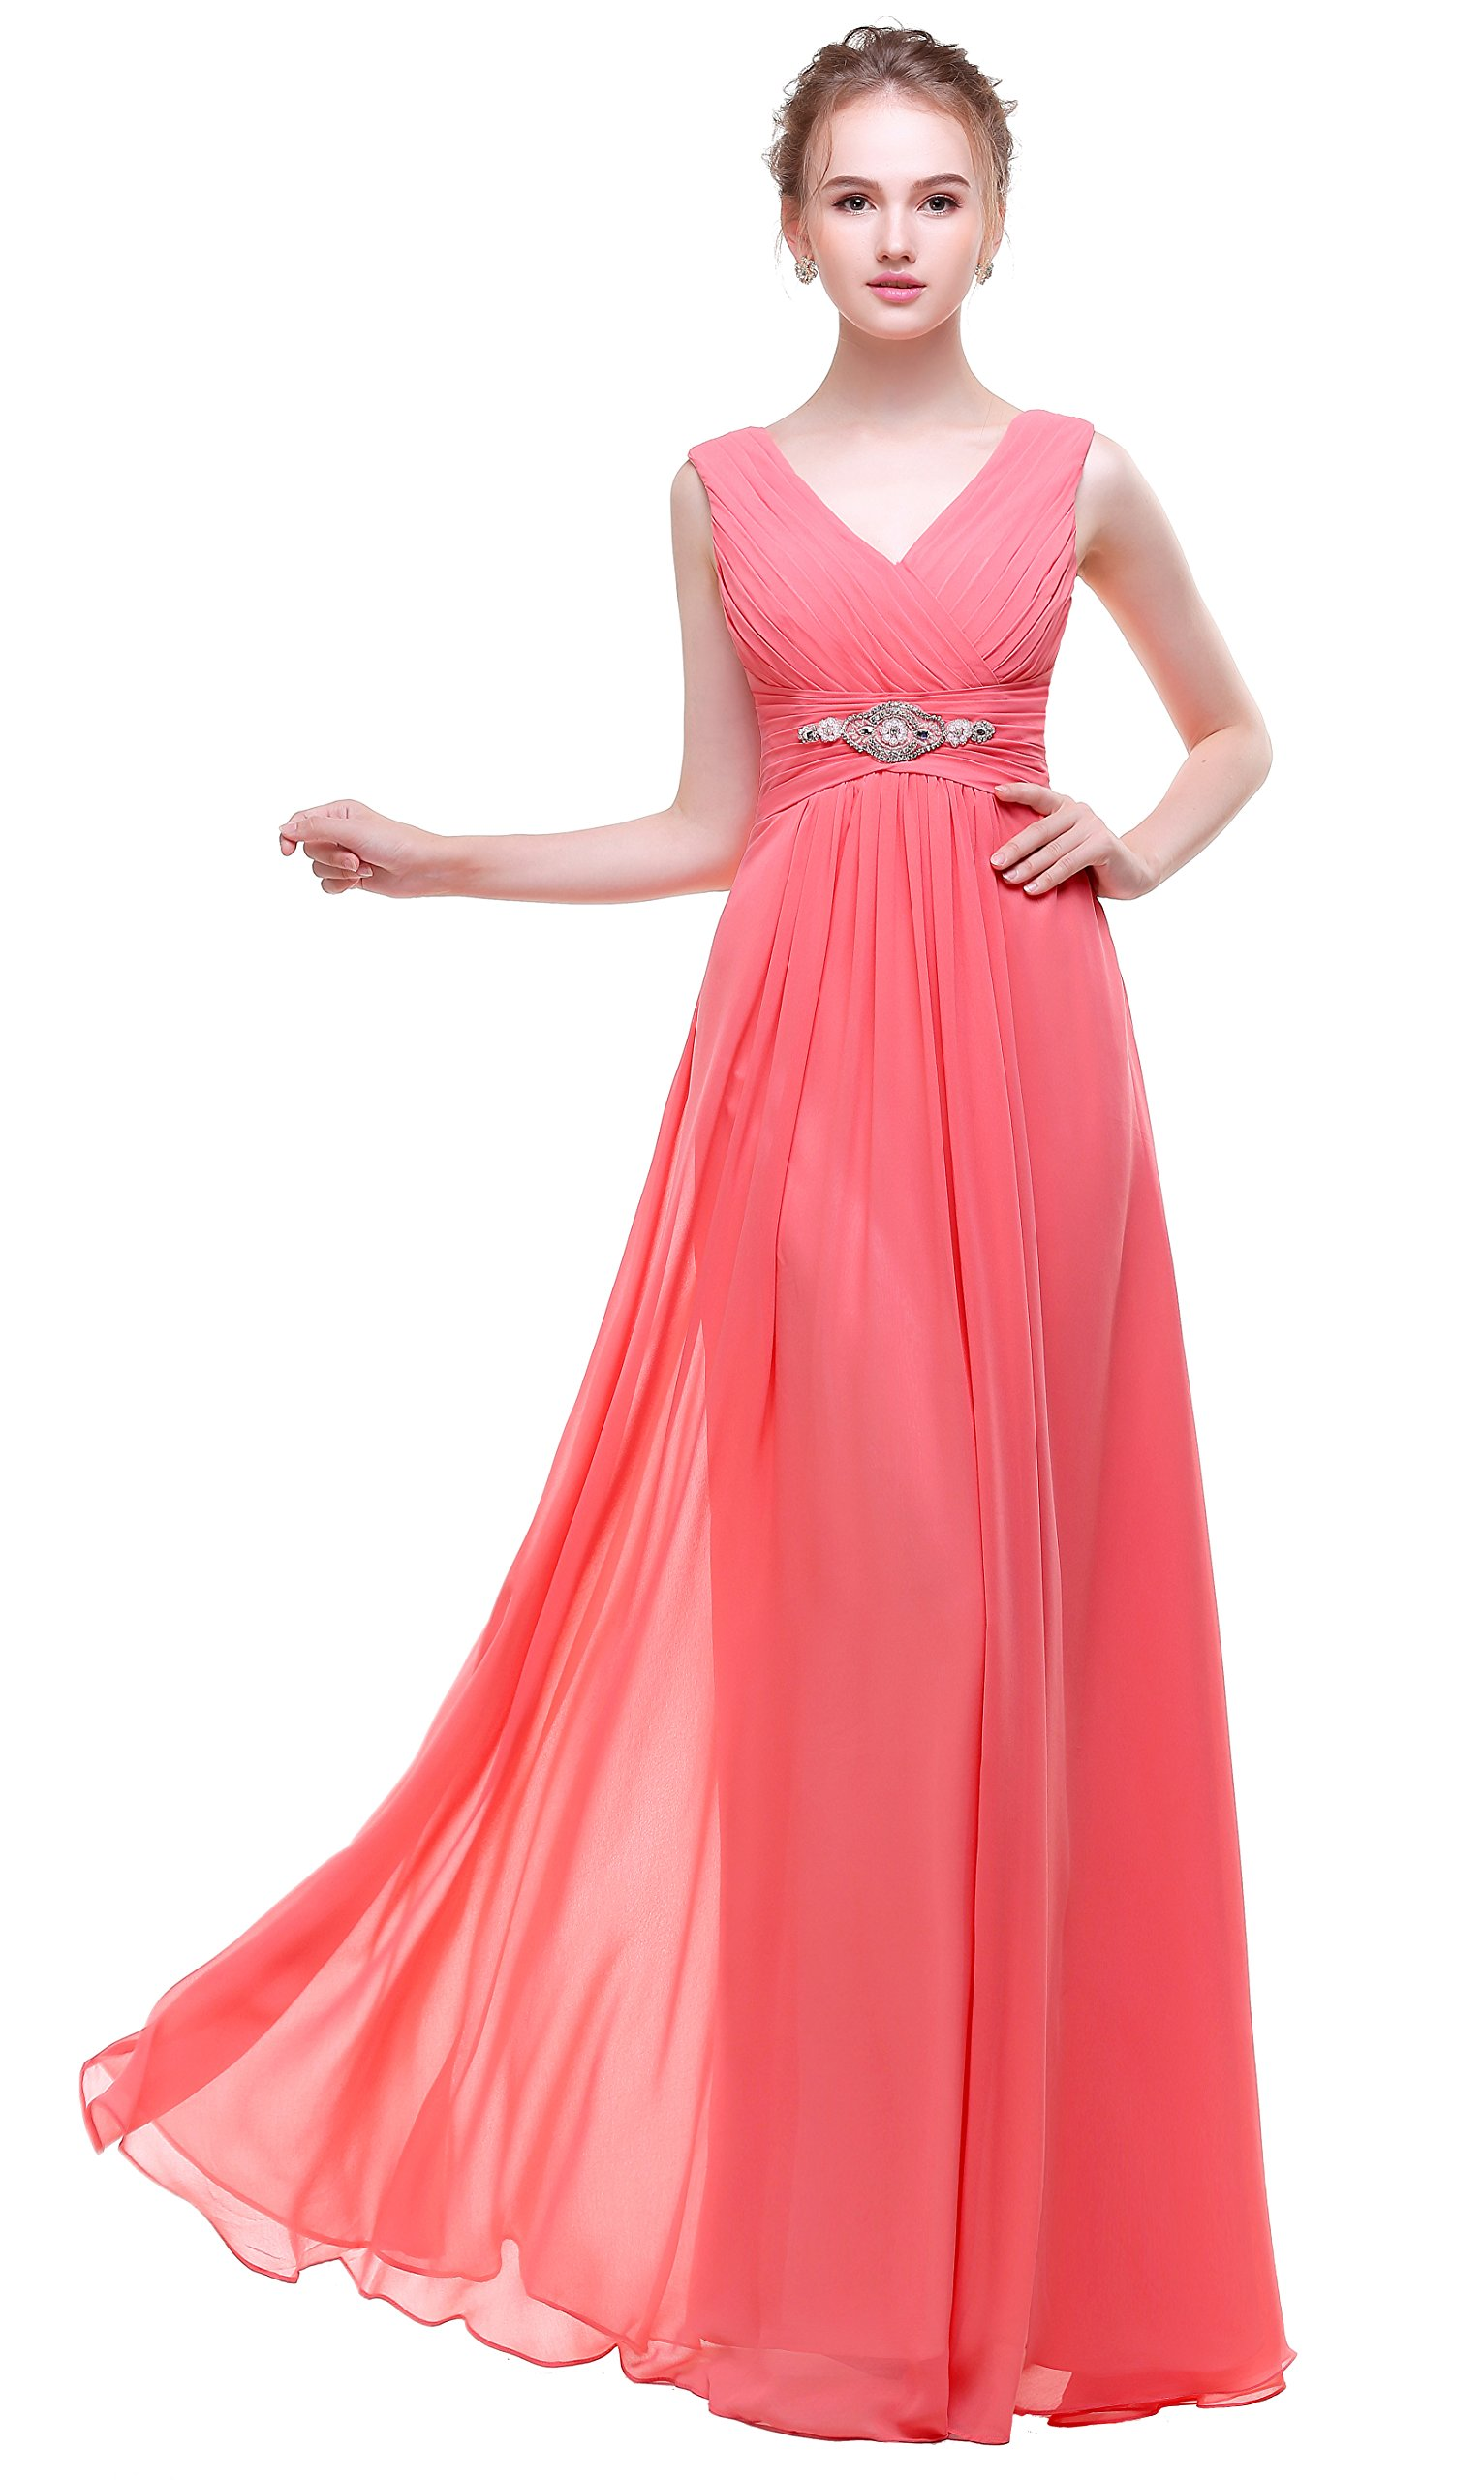 Long Formal Dress In Coral: Amazon.com